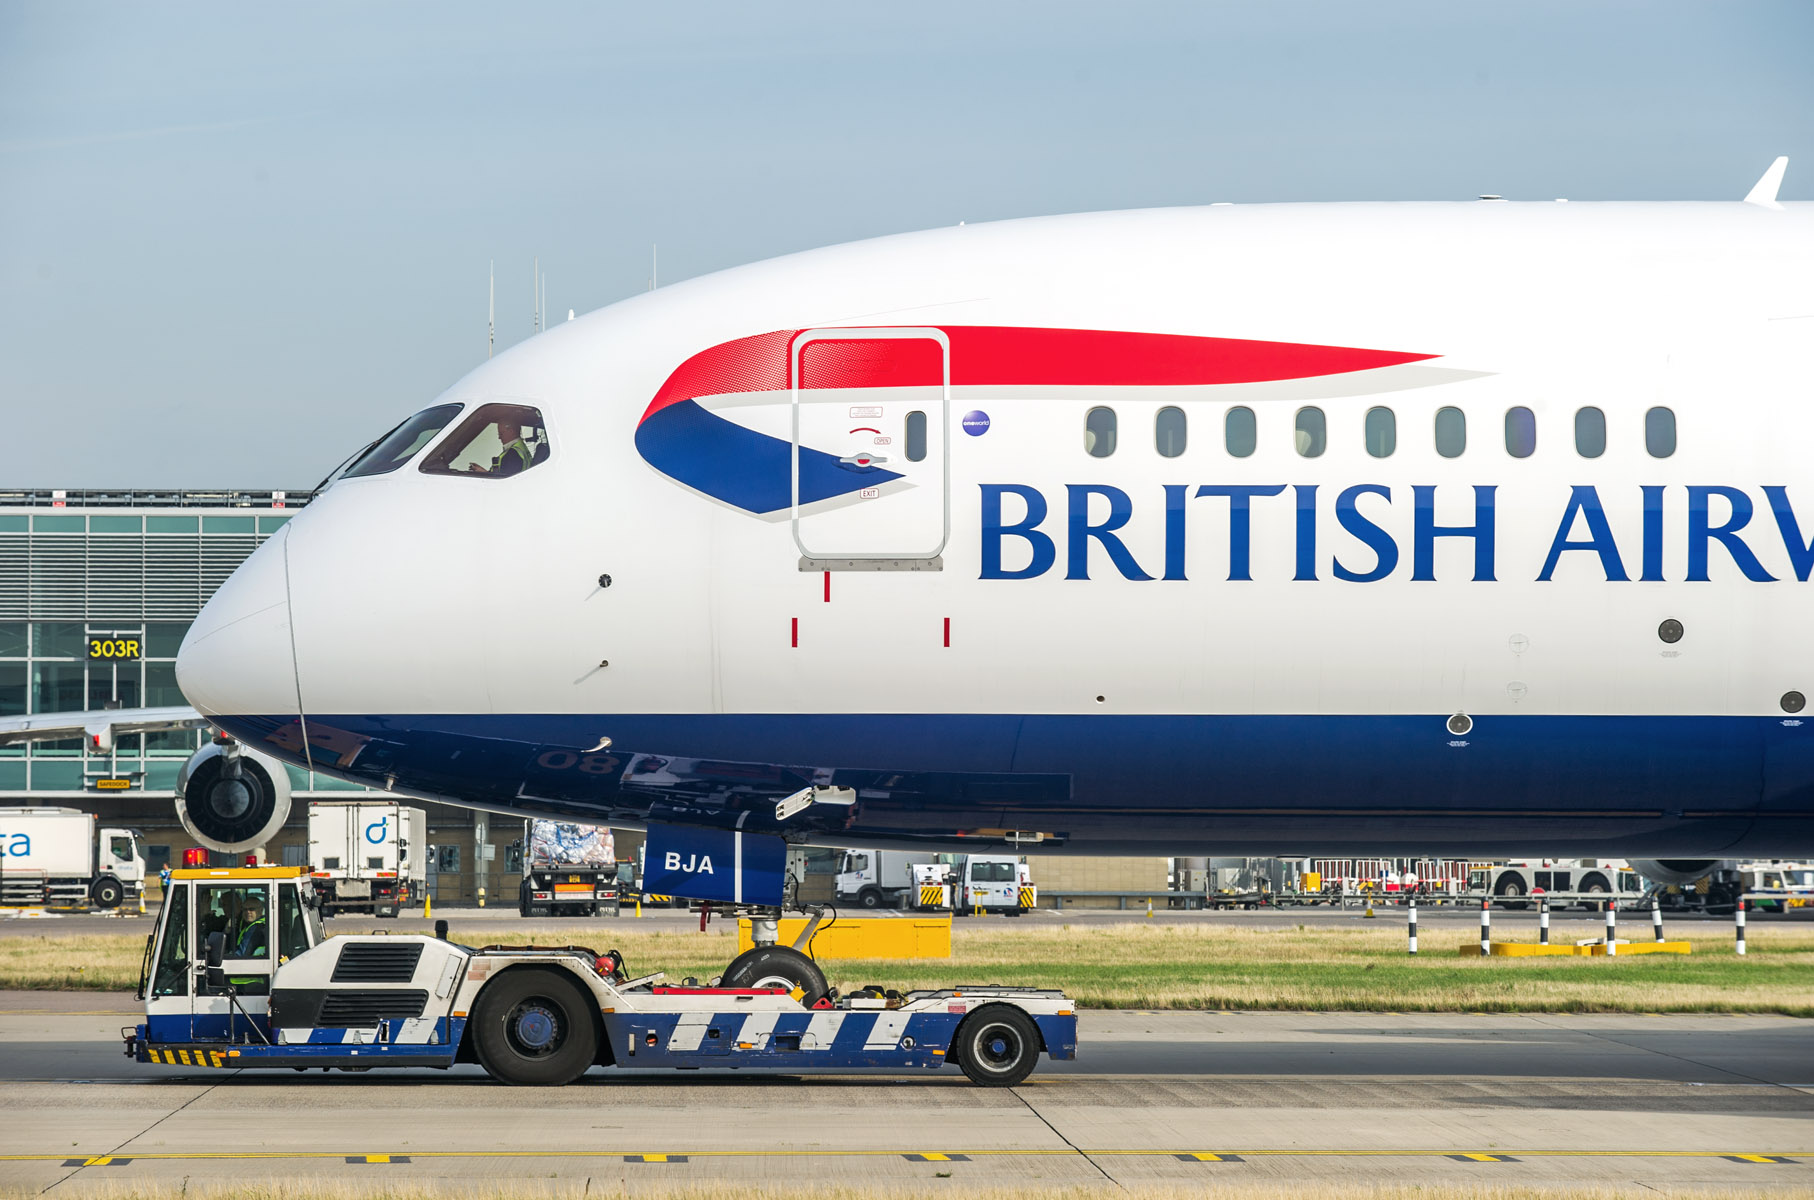 British Airways Will Lose its Chief Operating Officer and Director of People in Management Shakeup Following Last Year's Pilot Strike